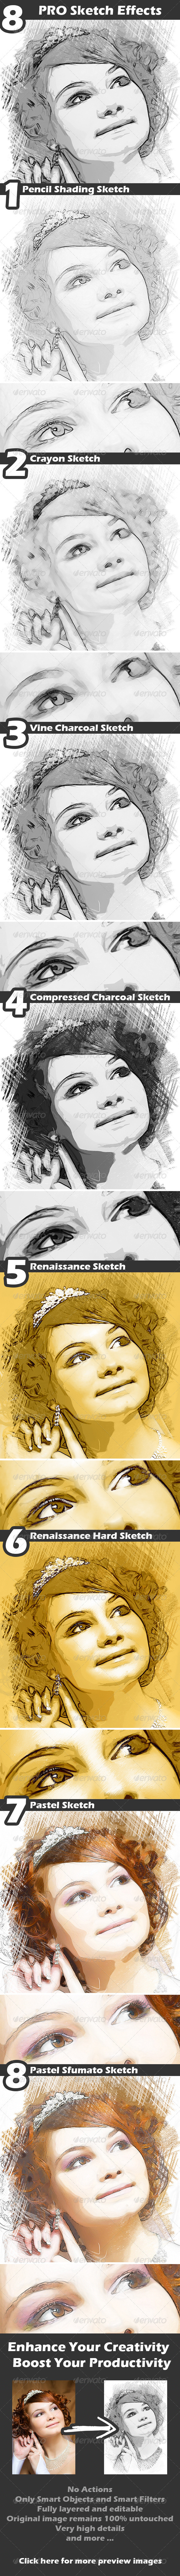 Sketch Effects - Artistic Photo Templates